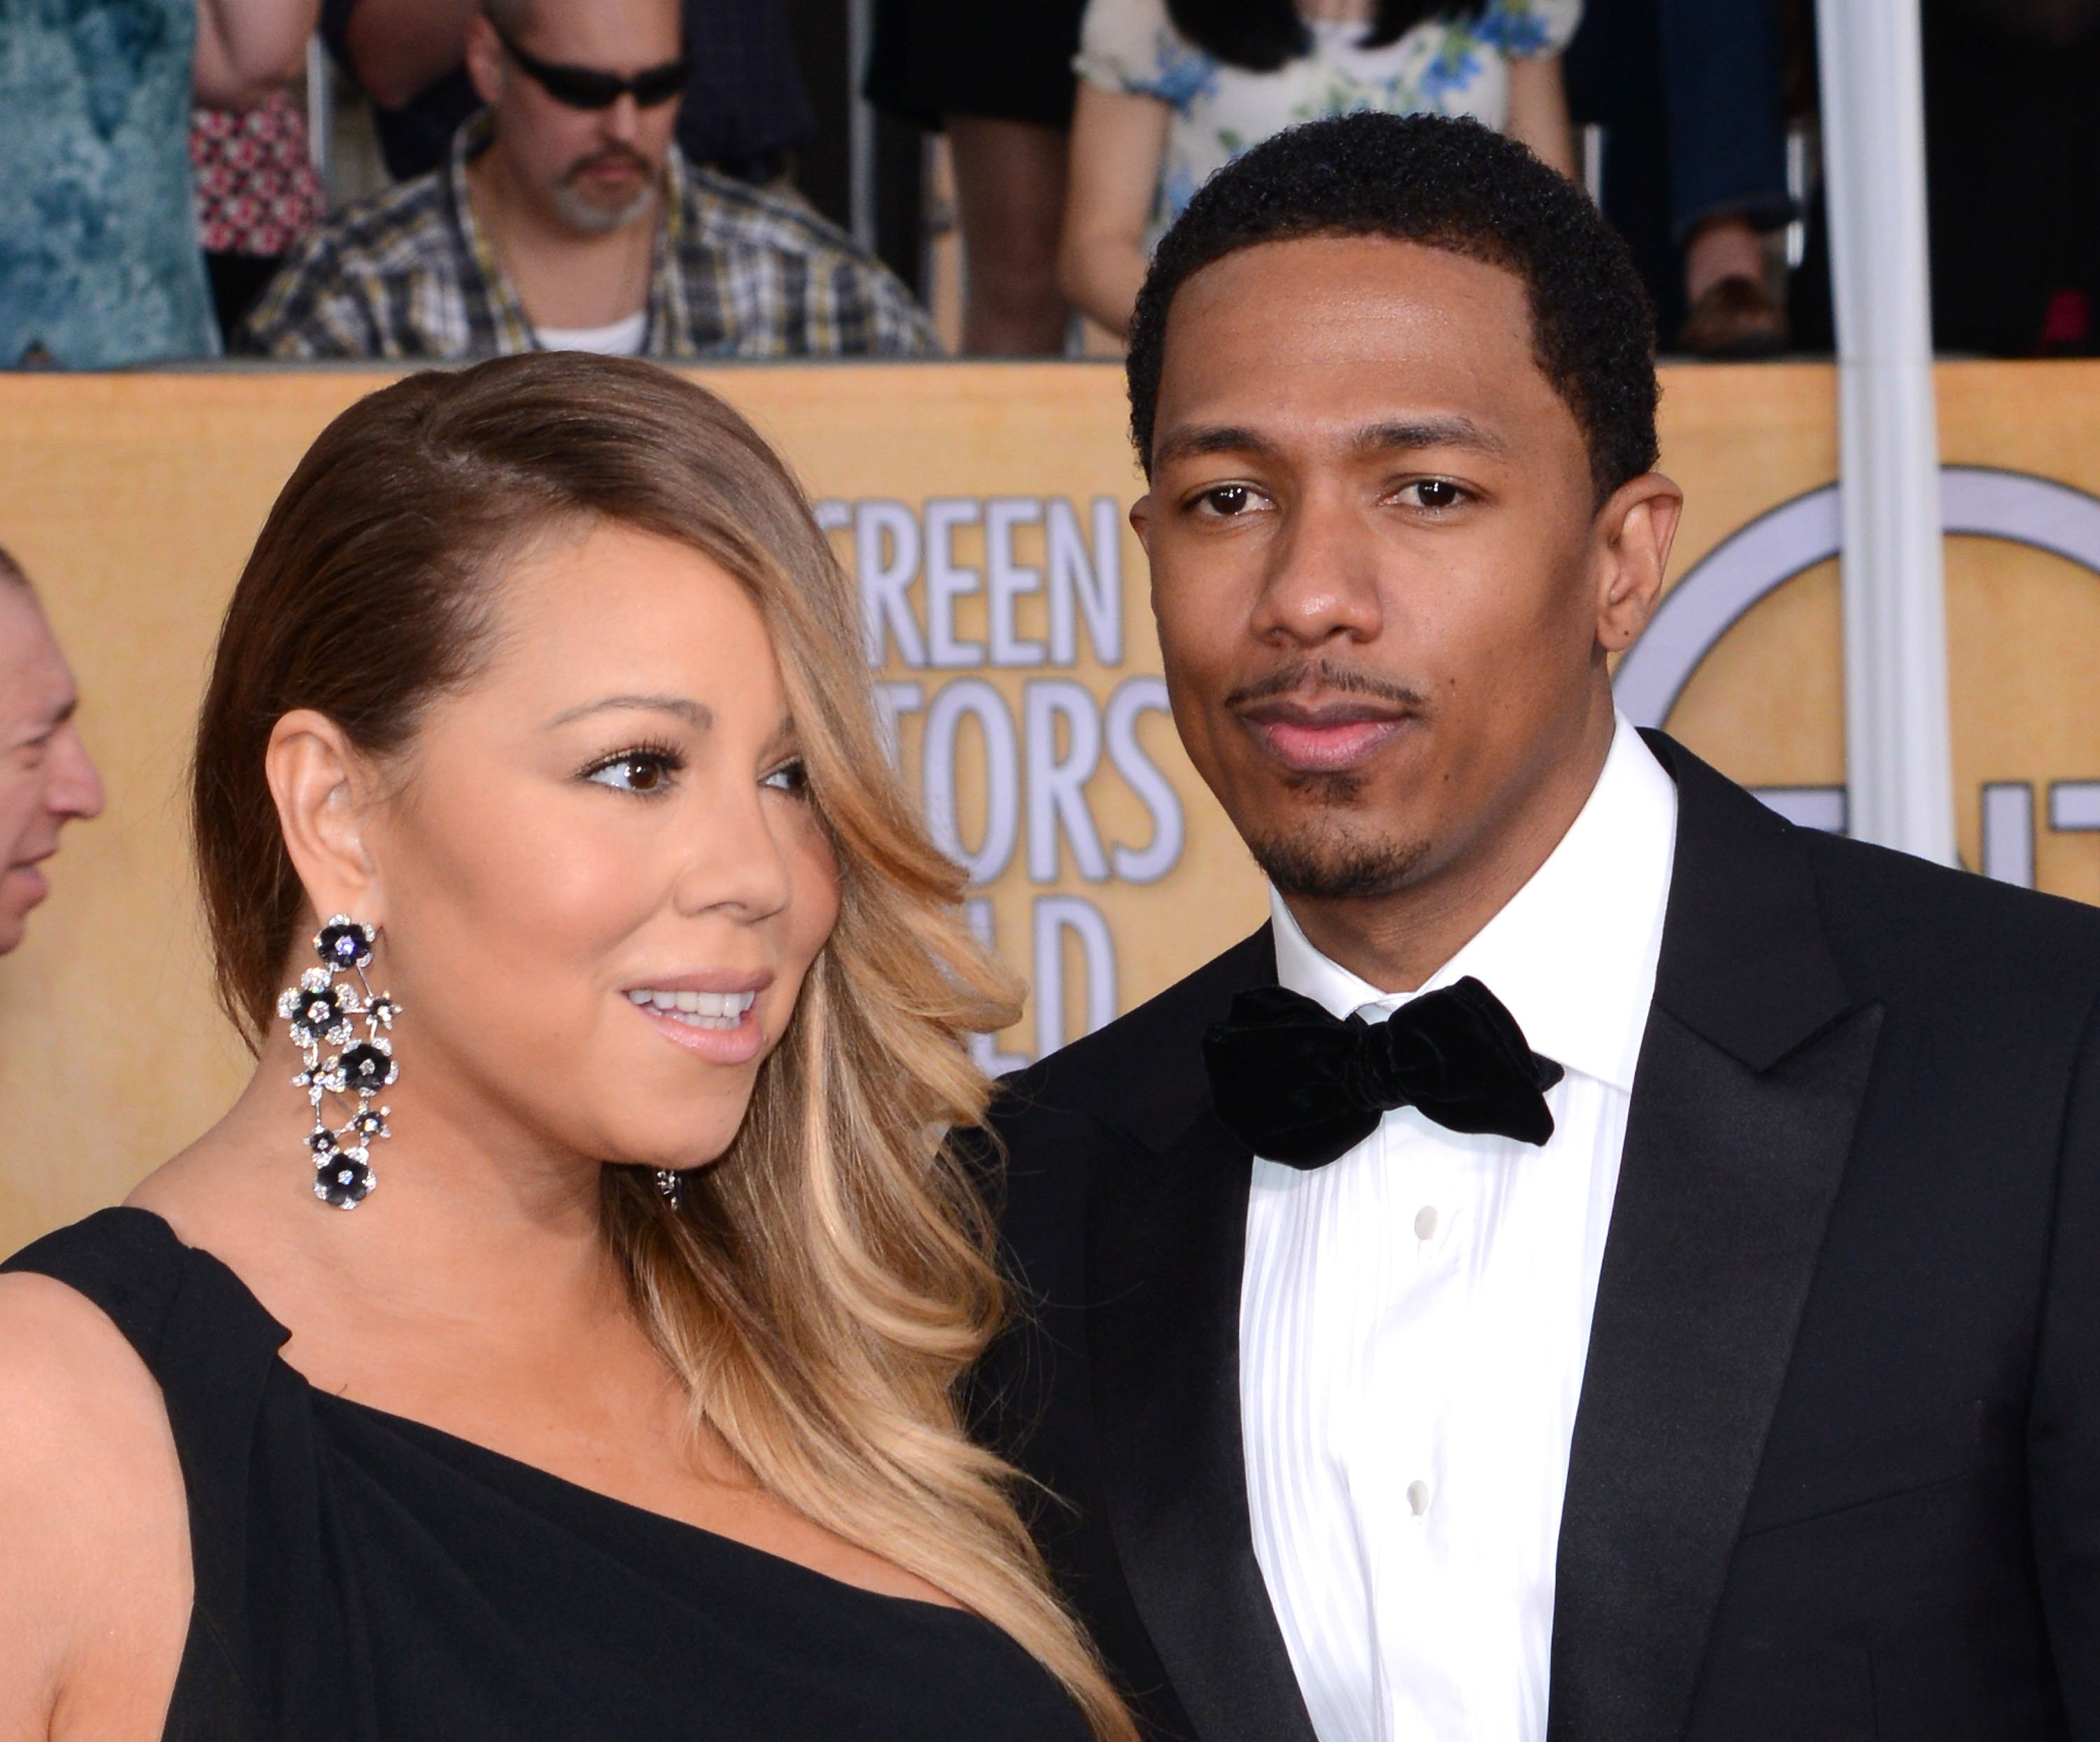 Mariah Carey and Husband Nick Cannon arrive at the 20th Annual Screen Actors Guild Awards at The Shrine Auditorium on January 18, 2014, in Los Angeles, California. | Source: Getty Images.